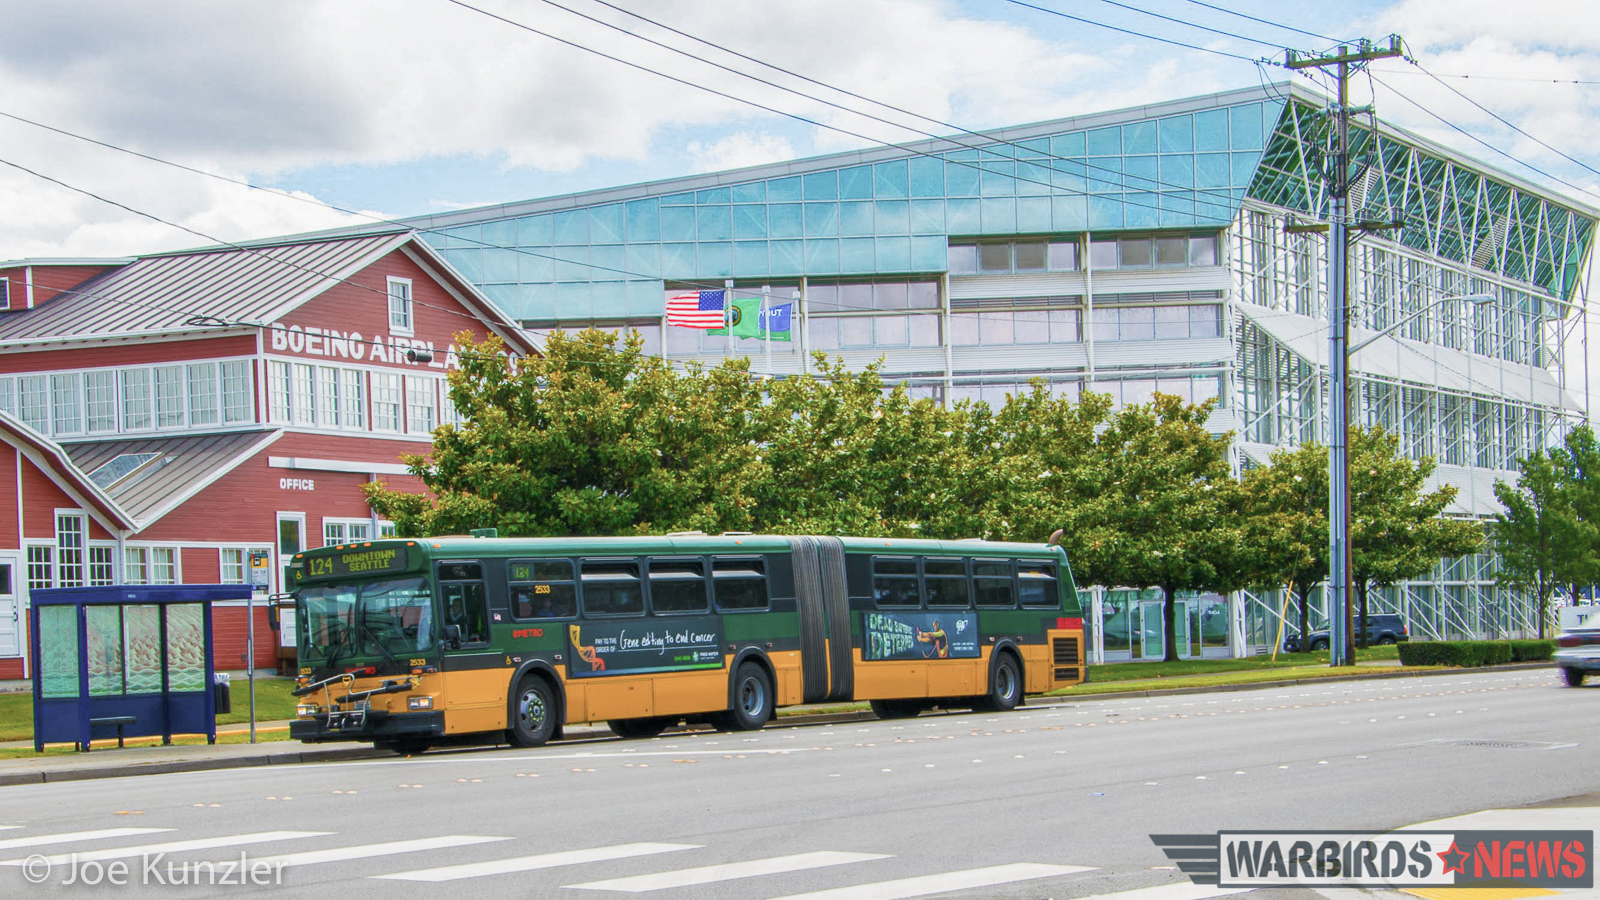 The 124 bus outside the Museum of Flight's main campus at Boeing Field. (photo by Joe Kunzler)